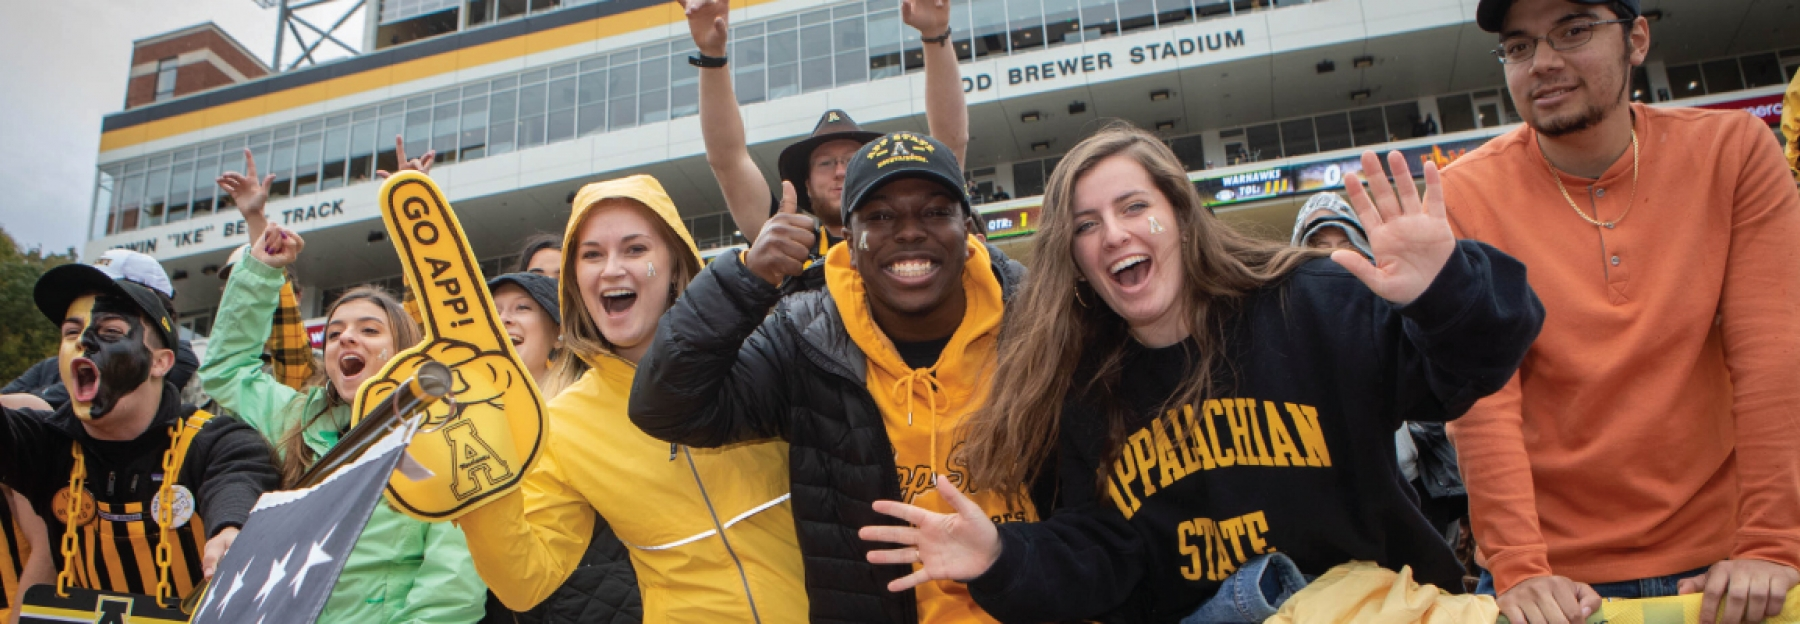 Excited students at App State home football game.